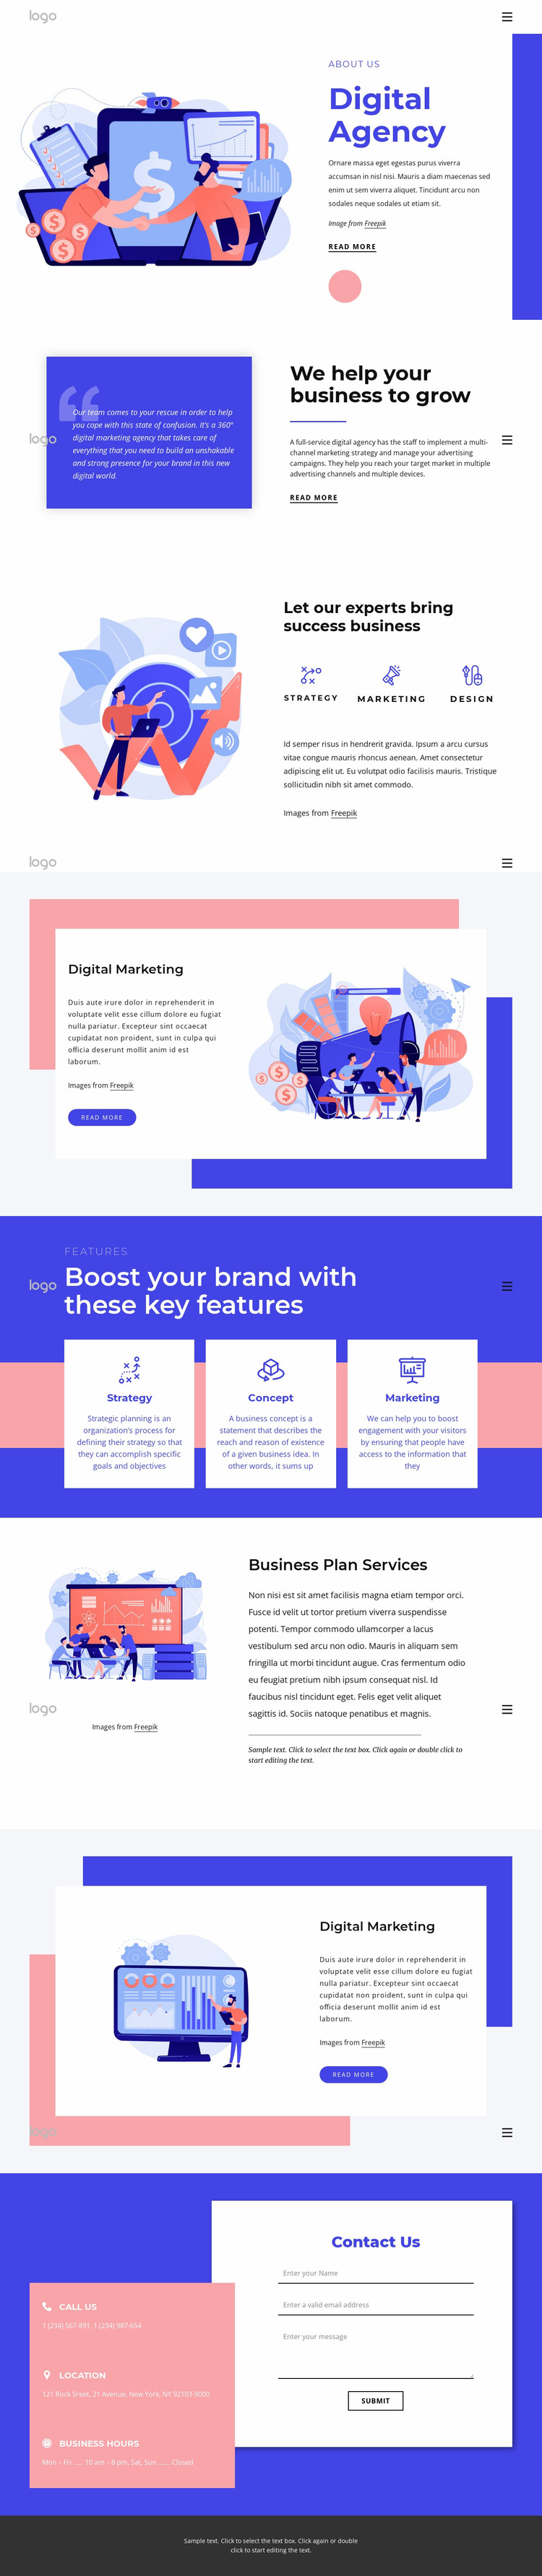 20 years of expertise in brand experience Website Mockup